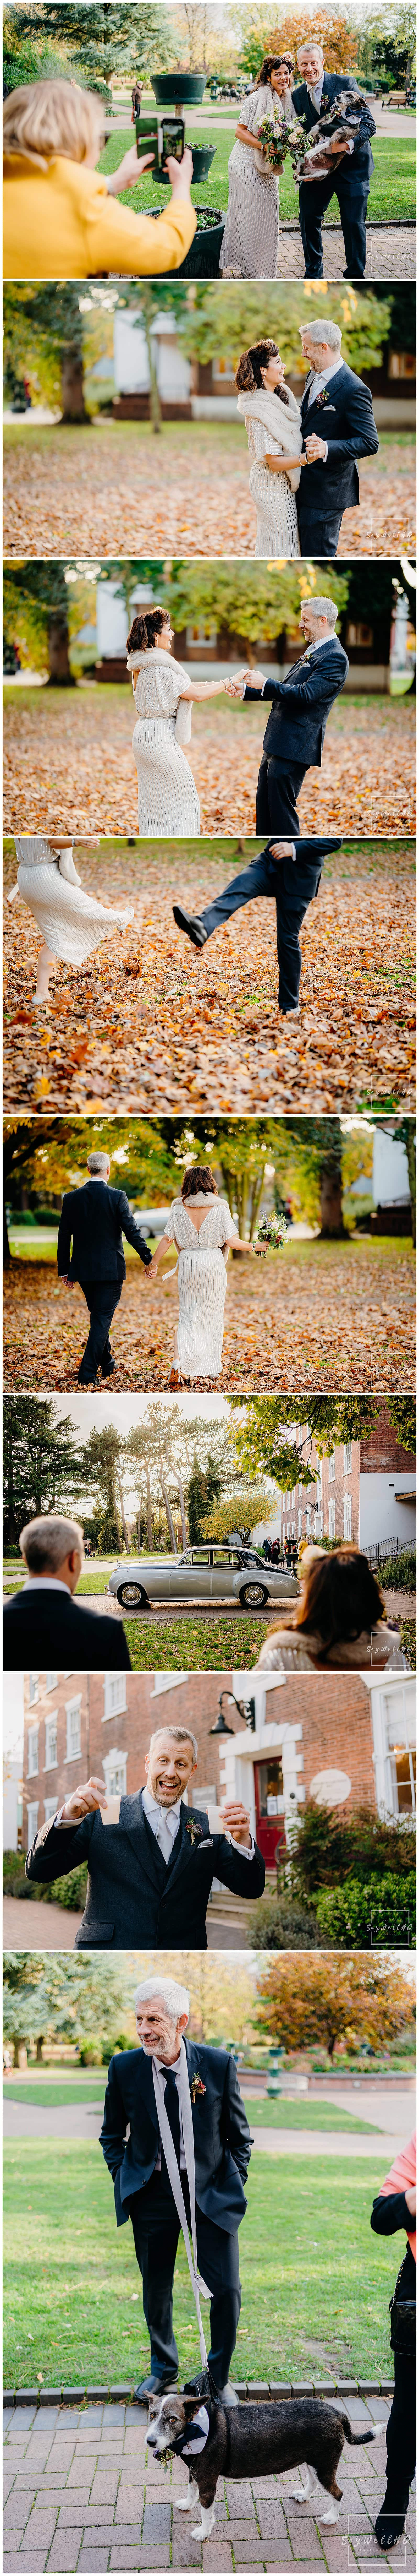 Bride and Groom enjoy the a walk together at their covid restricted wedding at bridgford hall in west bridgford nottingham